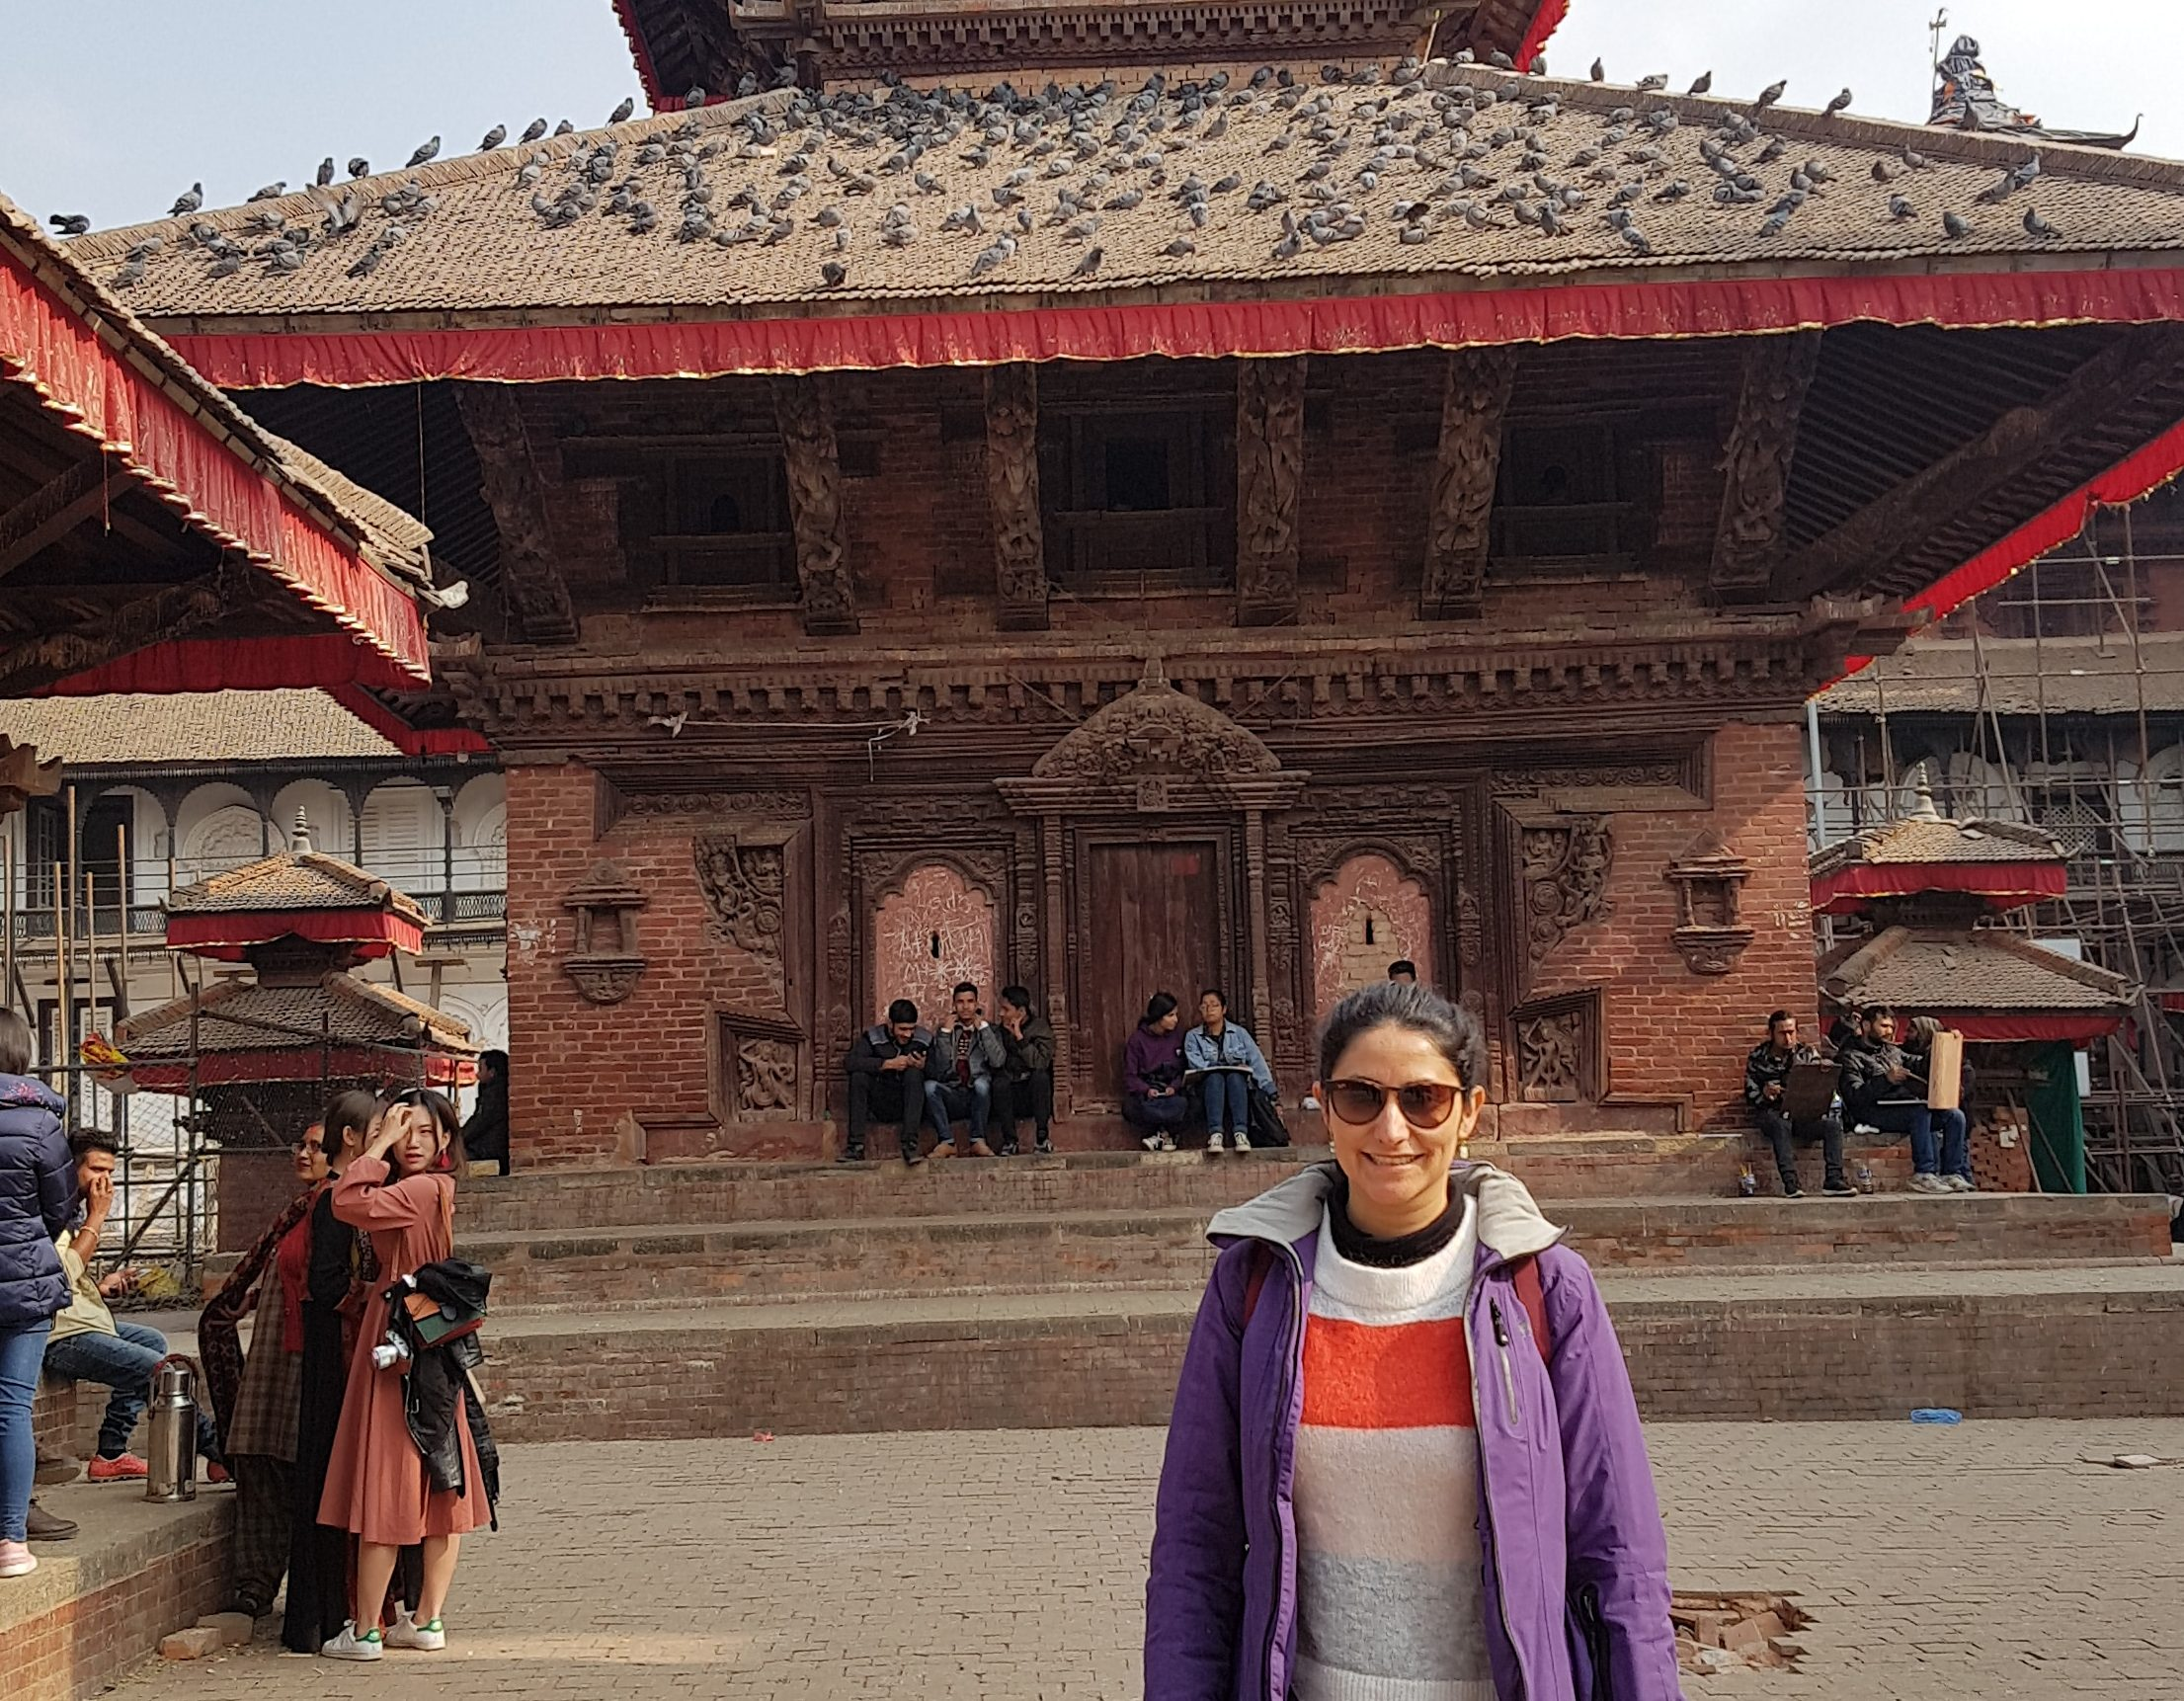 Claudia on the project in Nepal